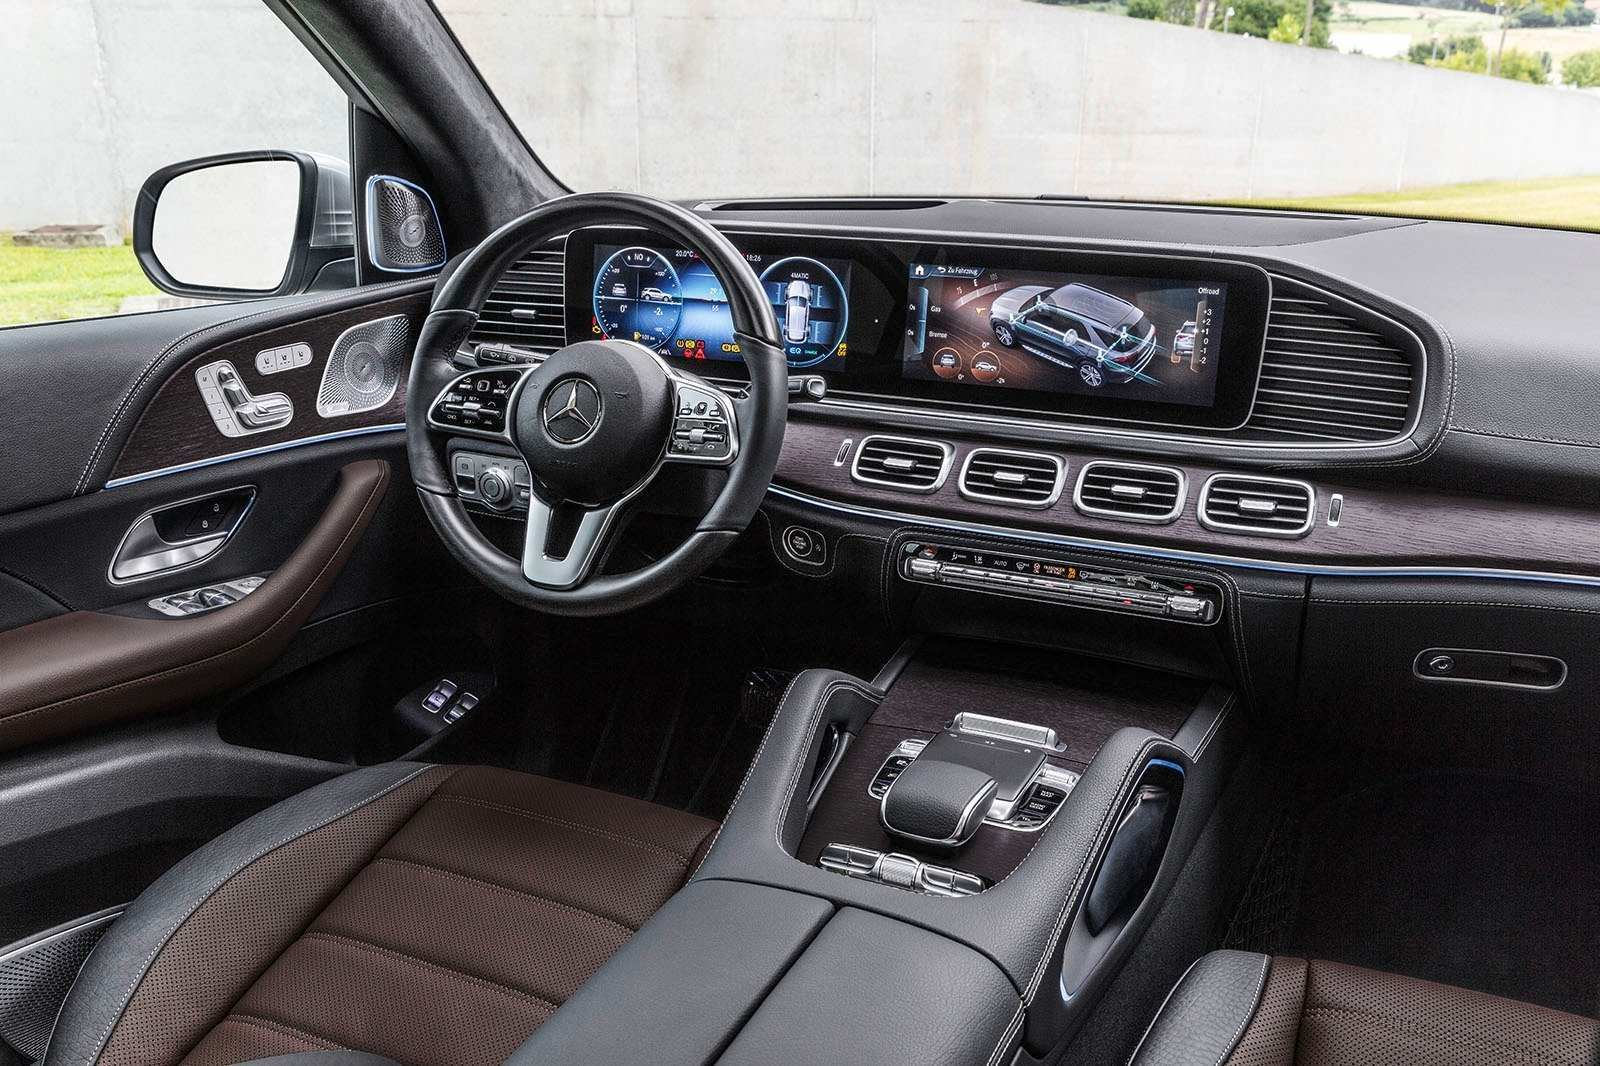 75 The Mercedes Benz Gle 2020 Launch Date Reviews with Mercedes Benz Gle 2020 Launch Date